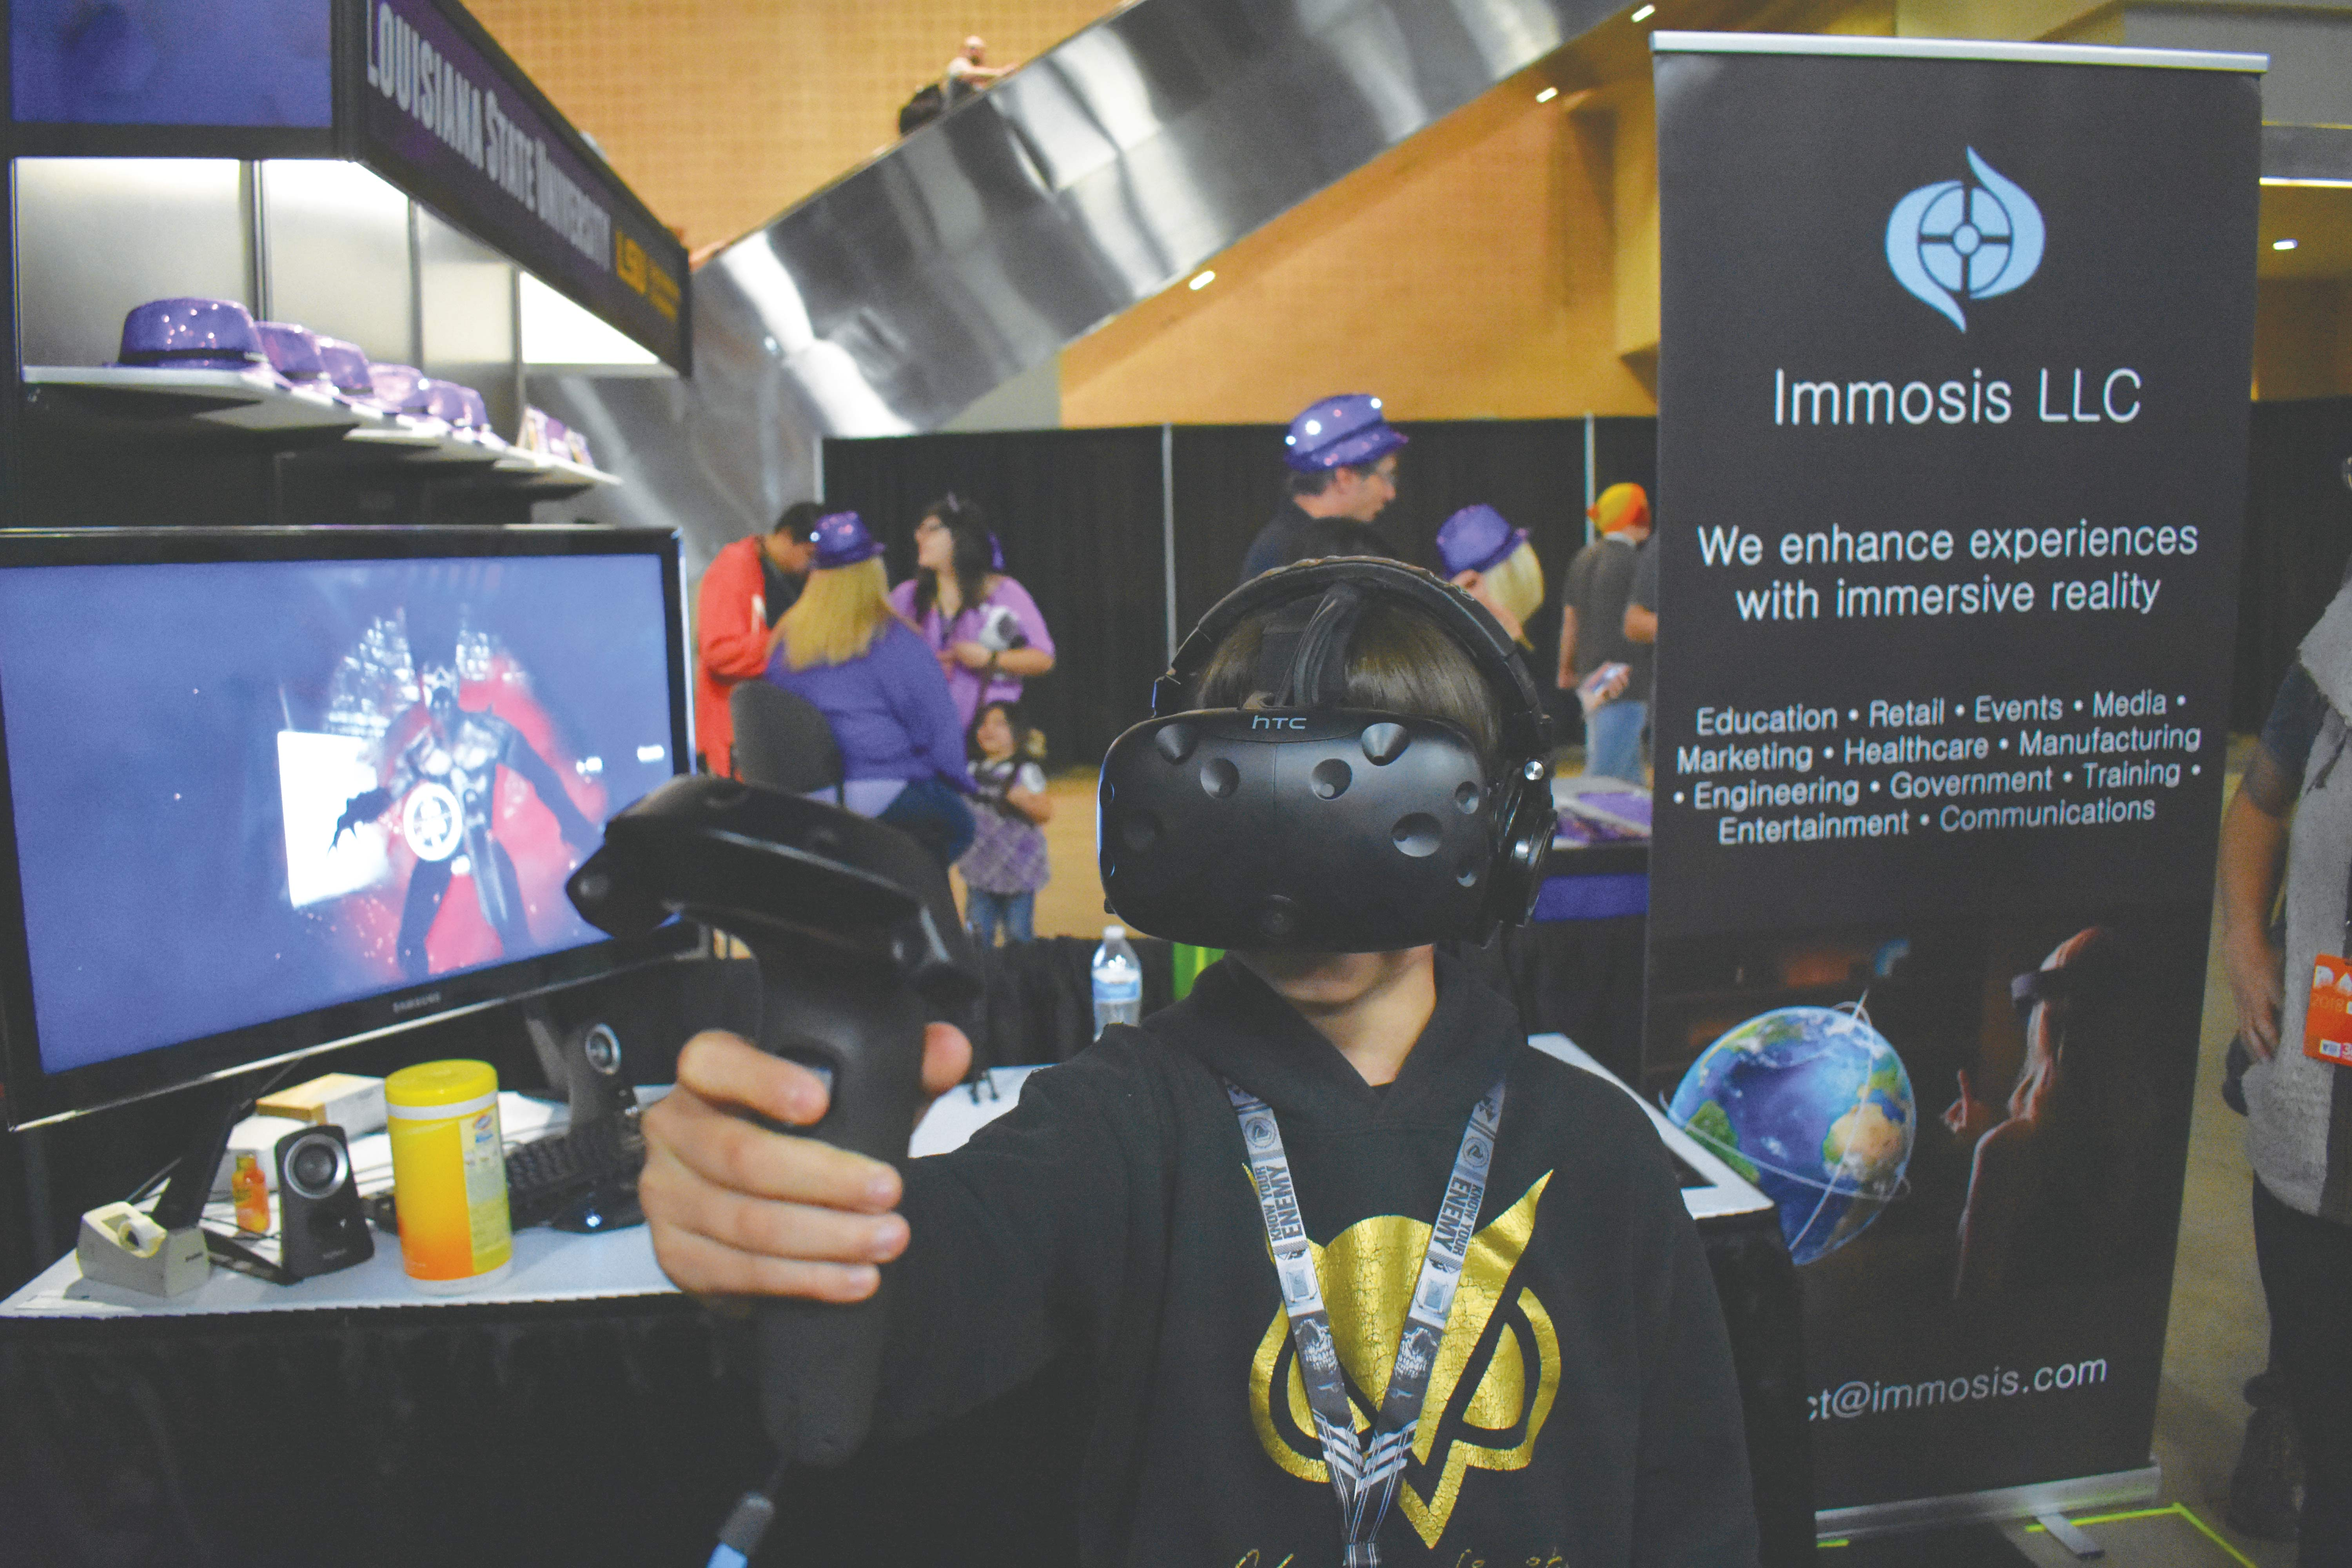 Alumnus, student start self-funded gaming company